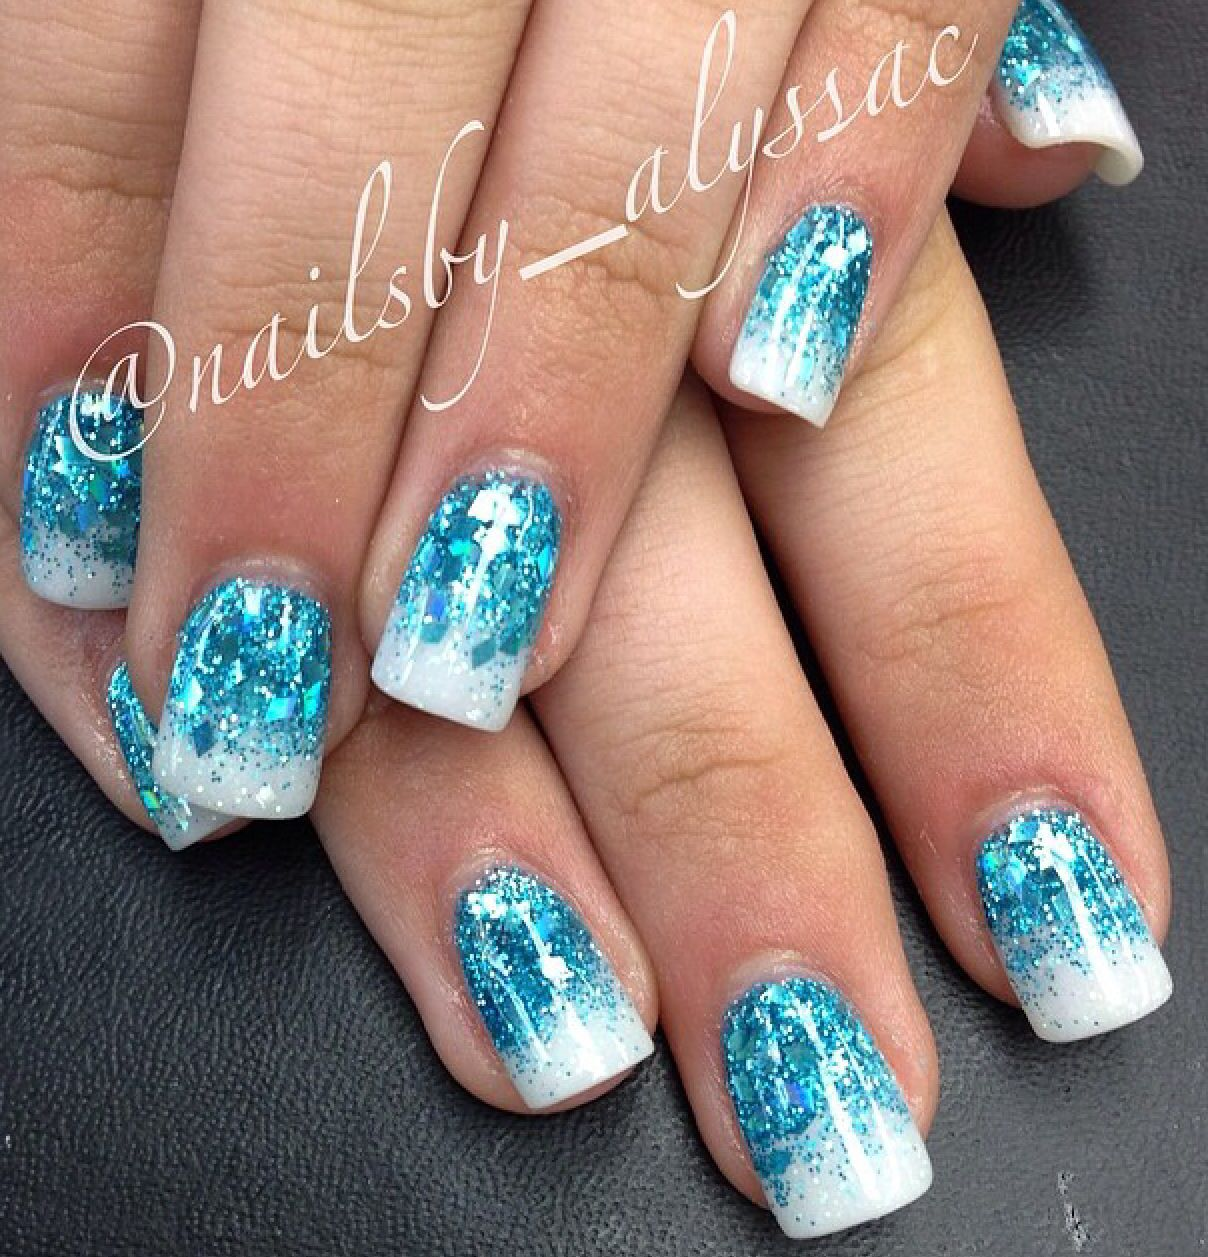 Frozen Inspired Nails Ice Blue Glitter Faded Into White Glitter Acrylics Solid Color Nails Done By A Blue Acrylic Nails Nail Designs Glitter Frozen Nail Art